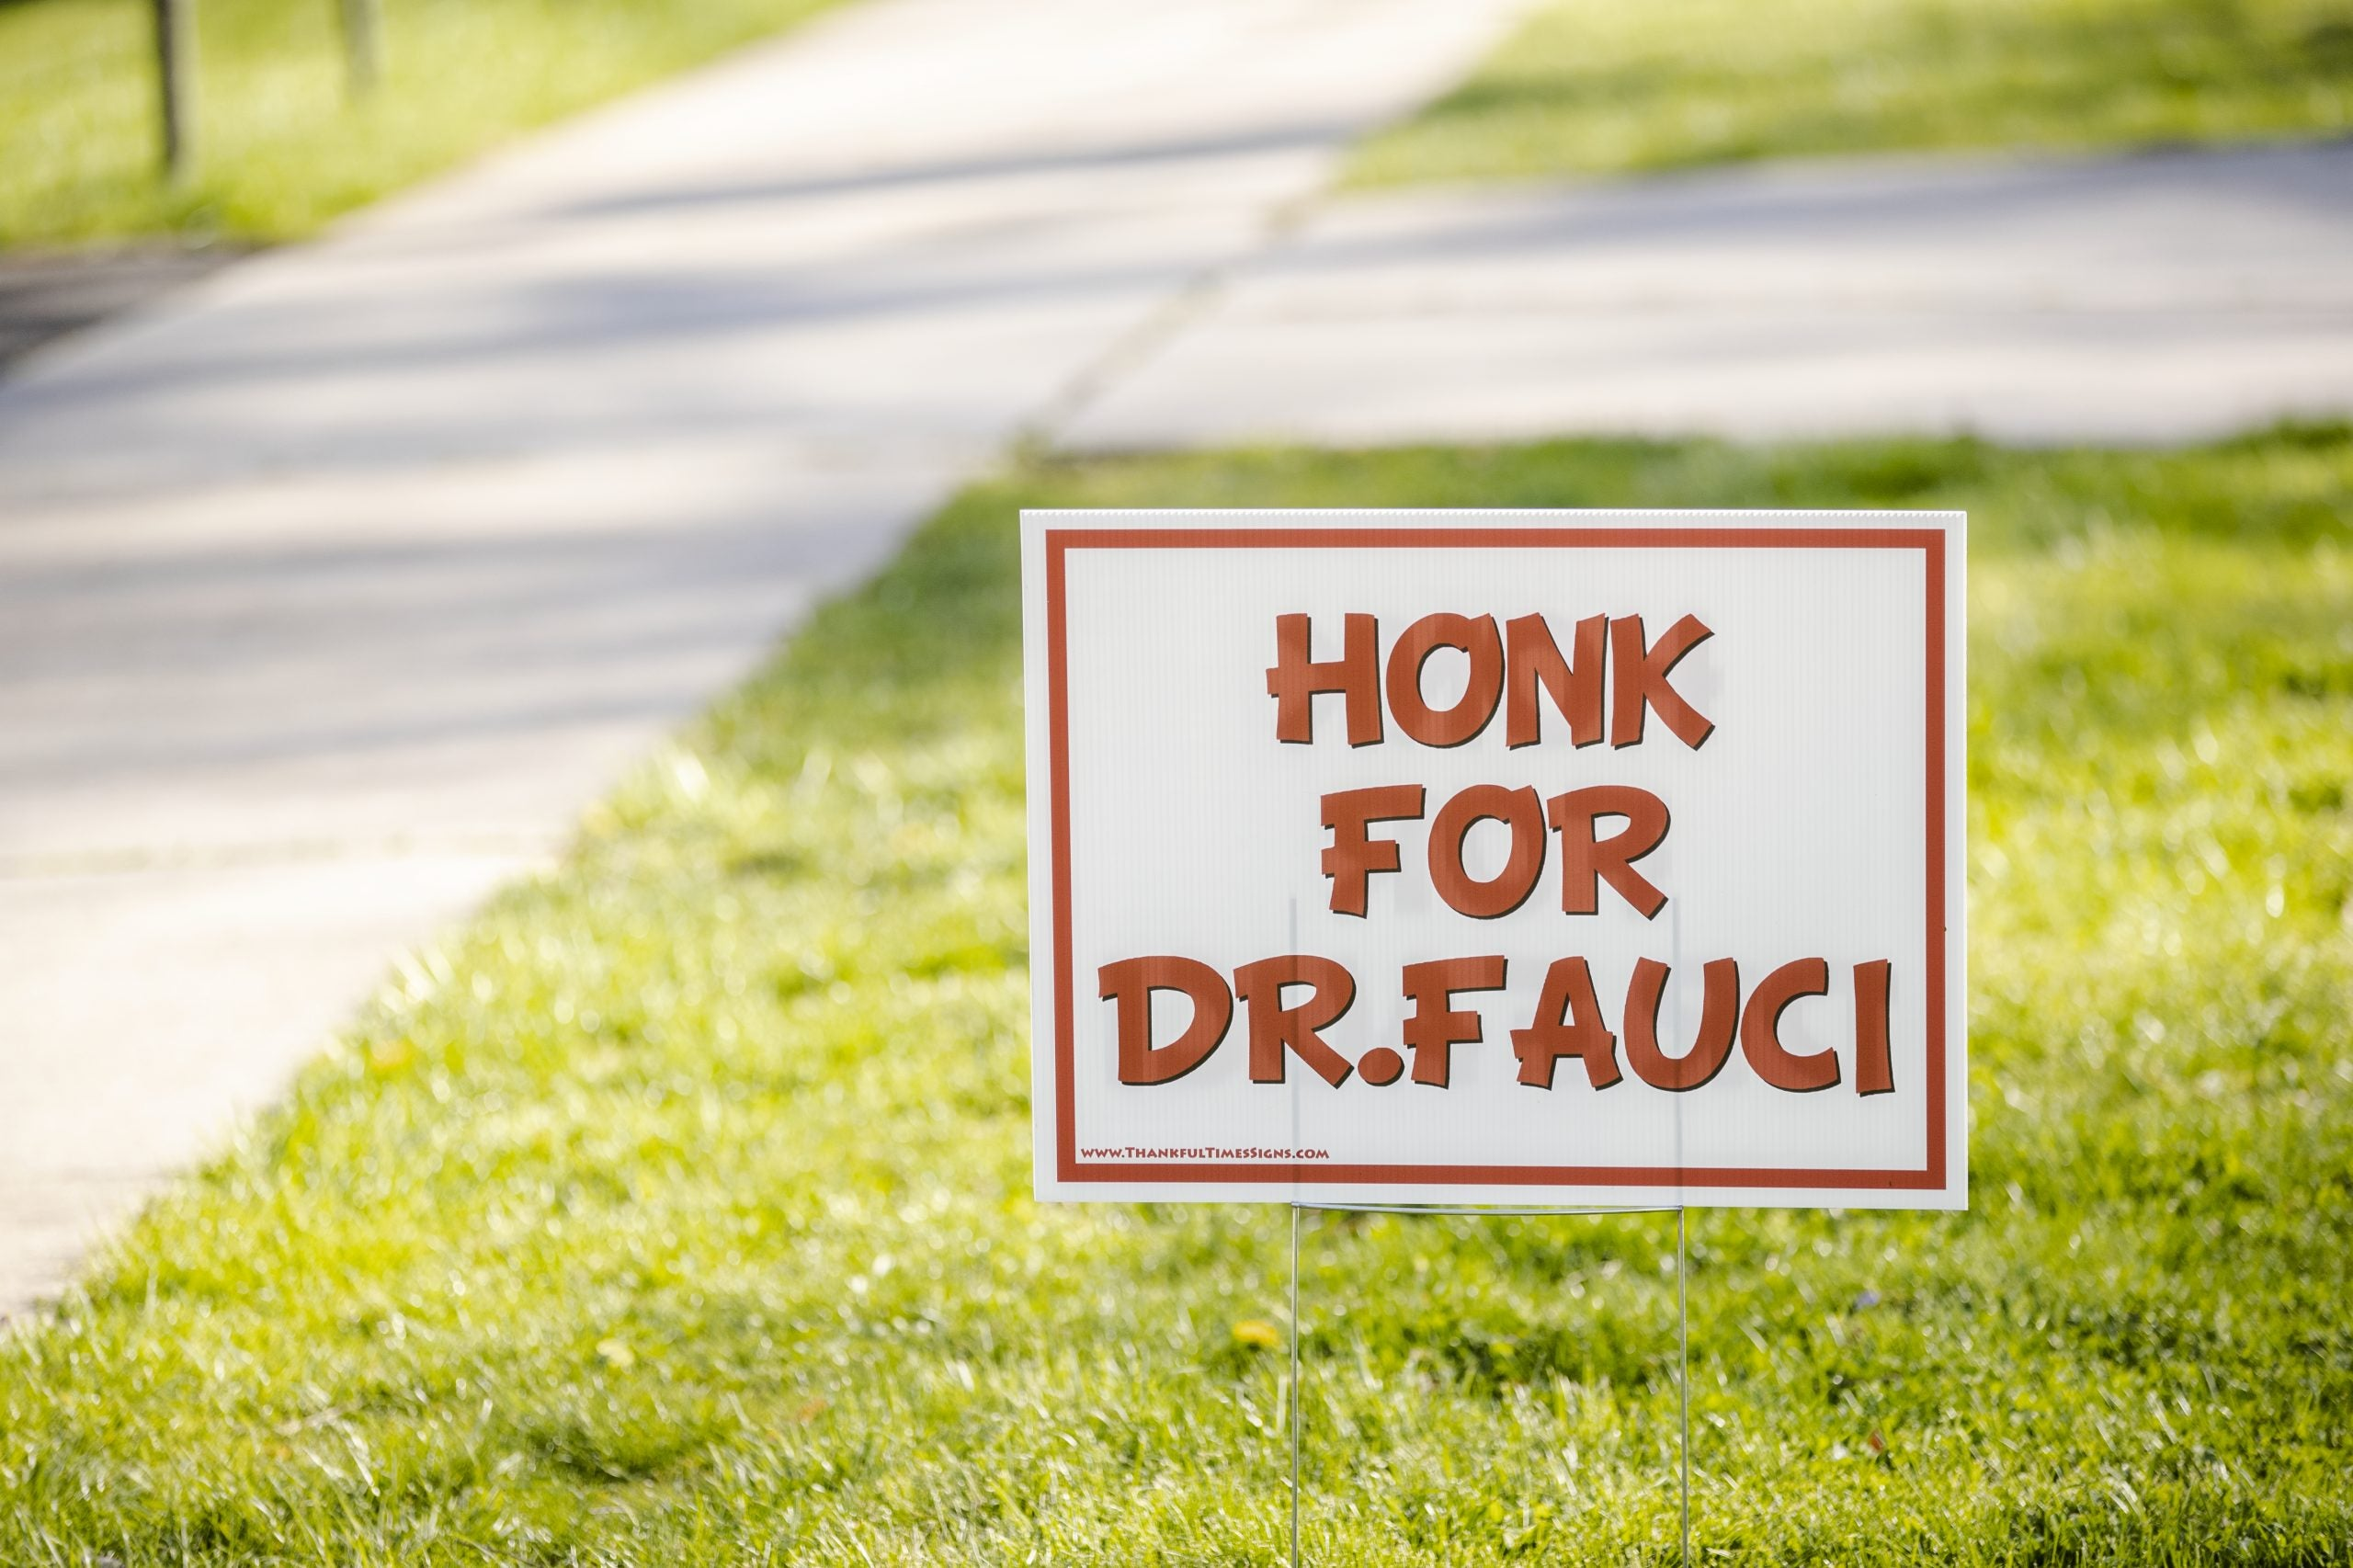 """A sign on a lawn says, """"Honk for Dr. Fauci"""" to show support for Dr. Anthony S. Fauci, M.D., director of the National Institute of Allergy and Infectious Diseases"""